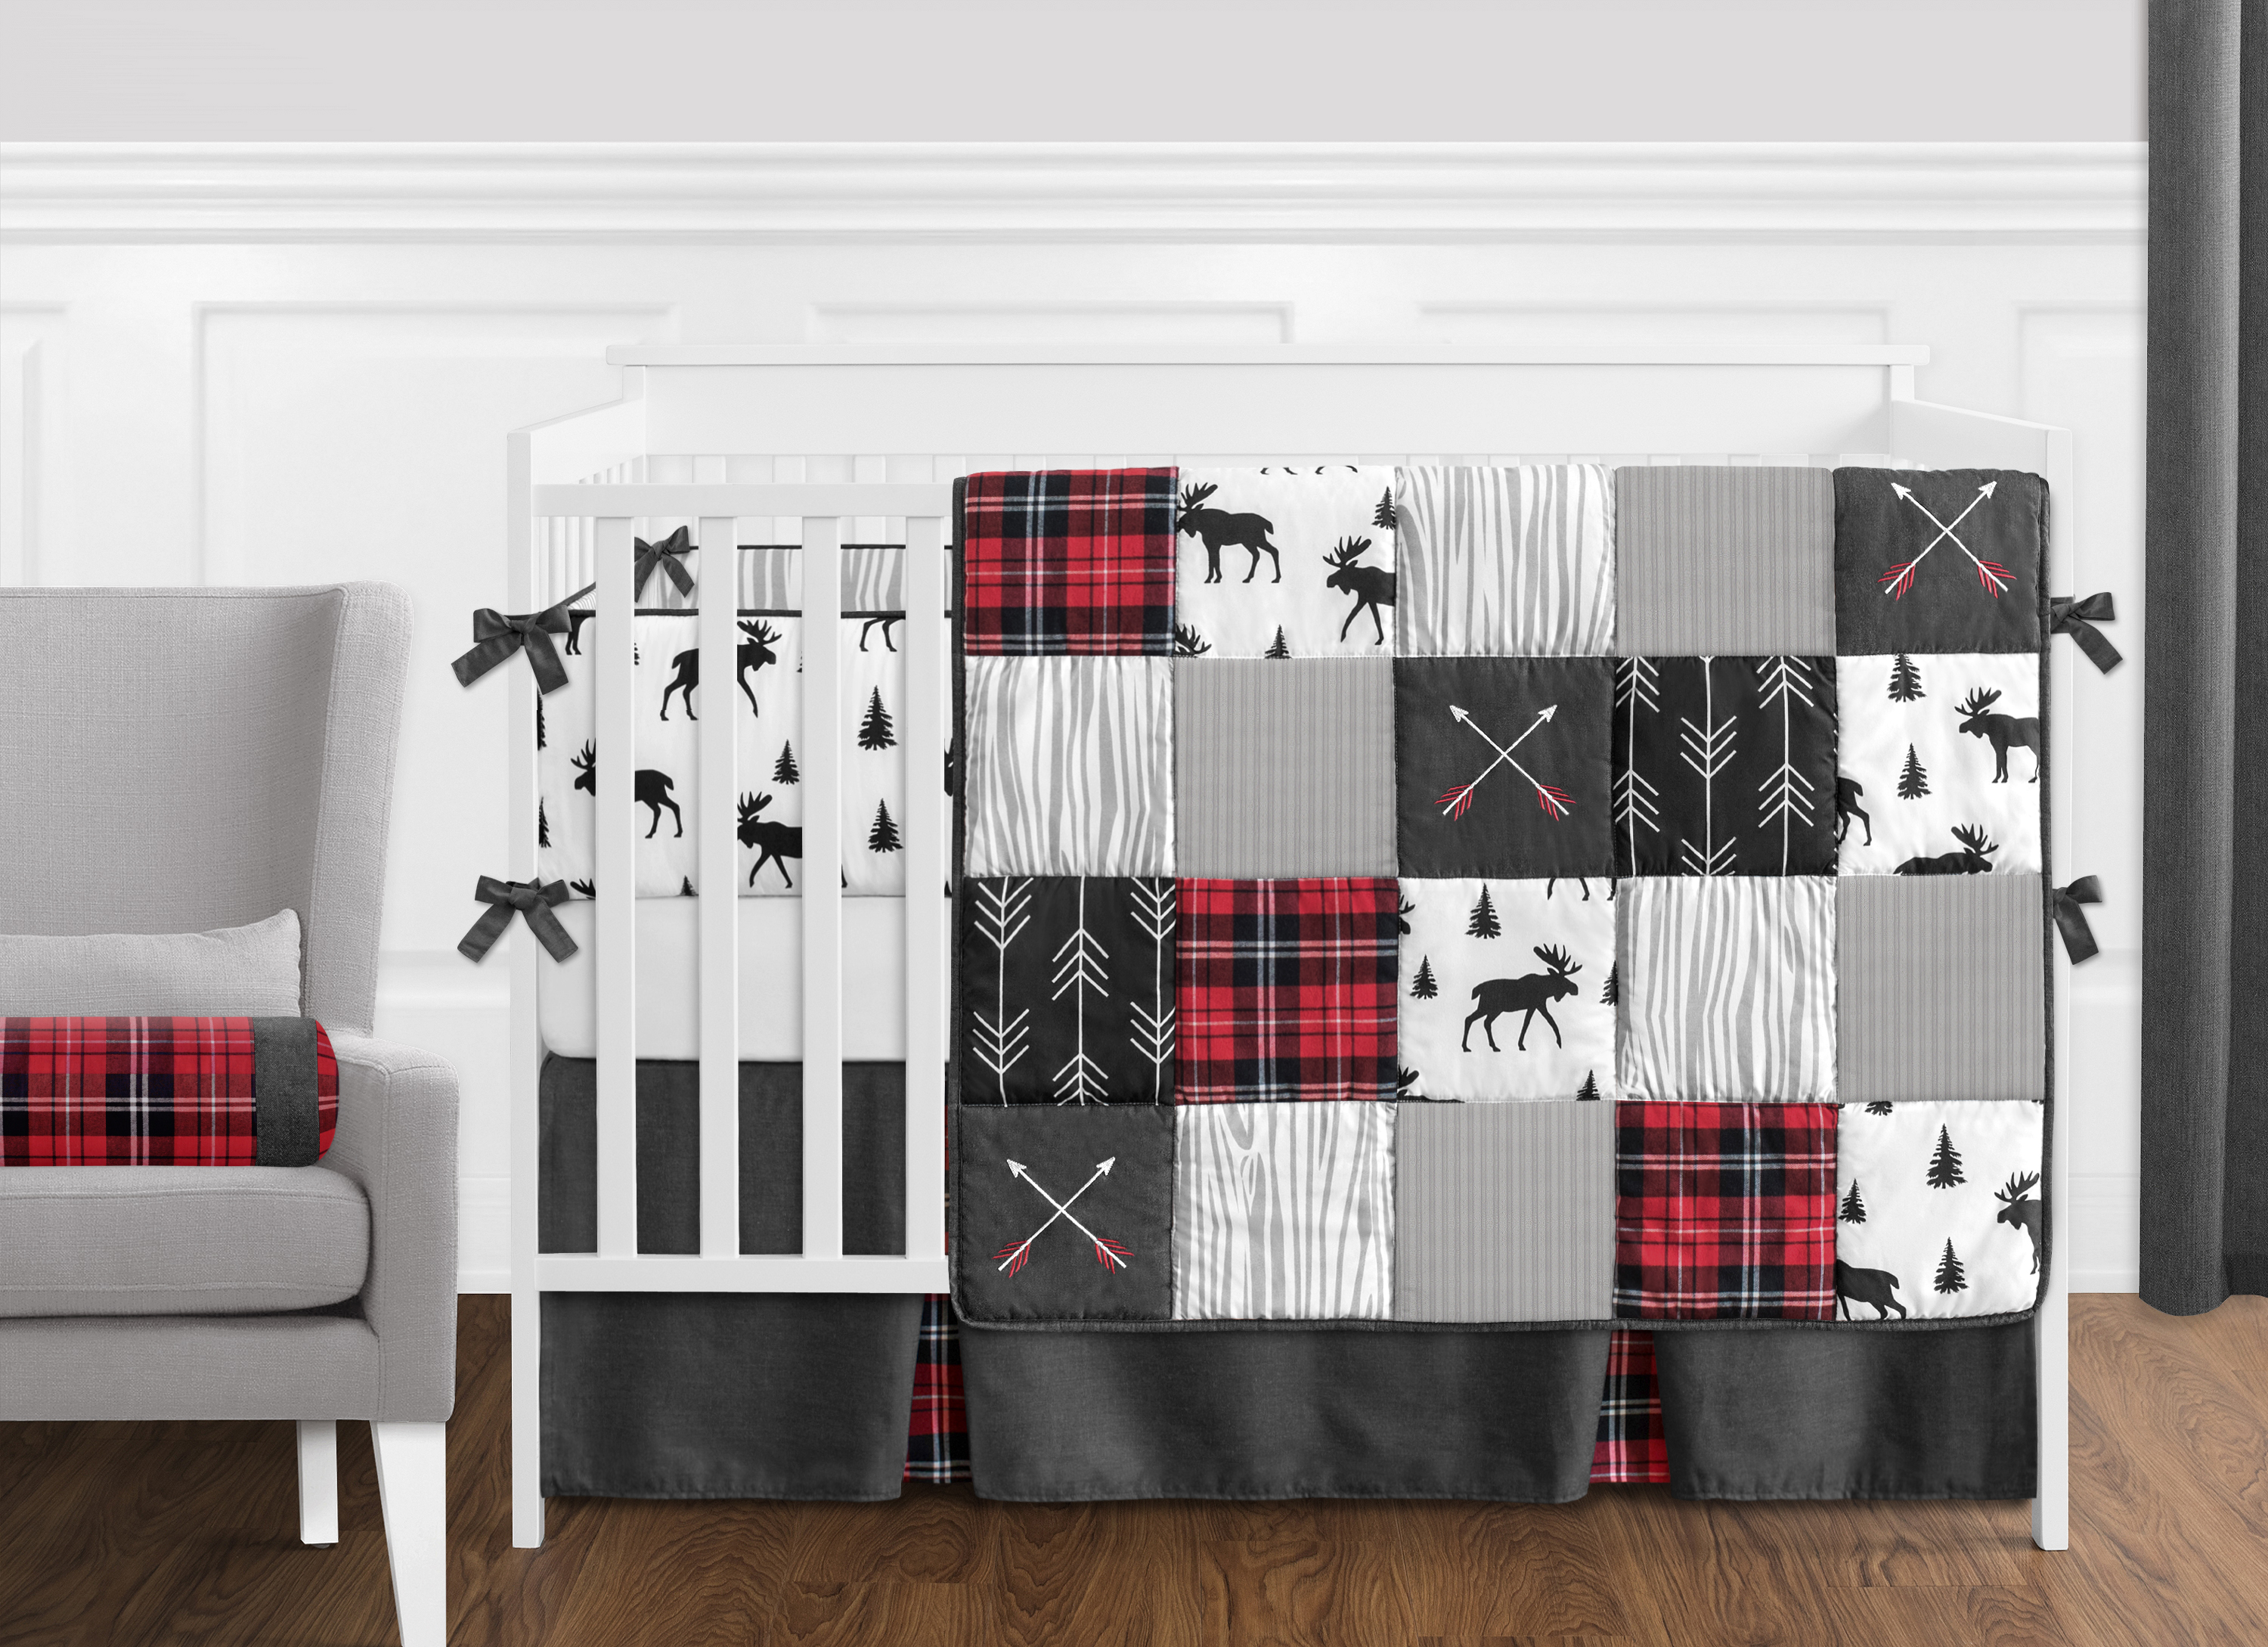 cribs pc designs stupendous com nature bedding sweet jojo piece adventure bear setsr sets r bumper crib boys animals without set awesome amazon in linen outdoor baby fox dream